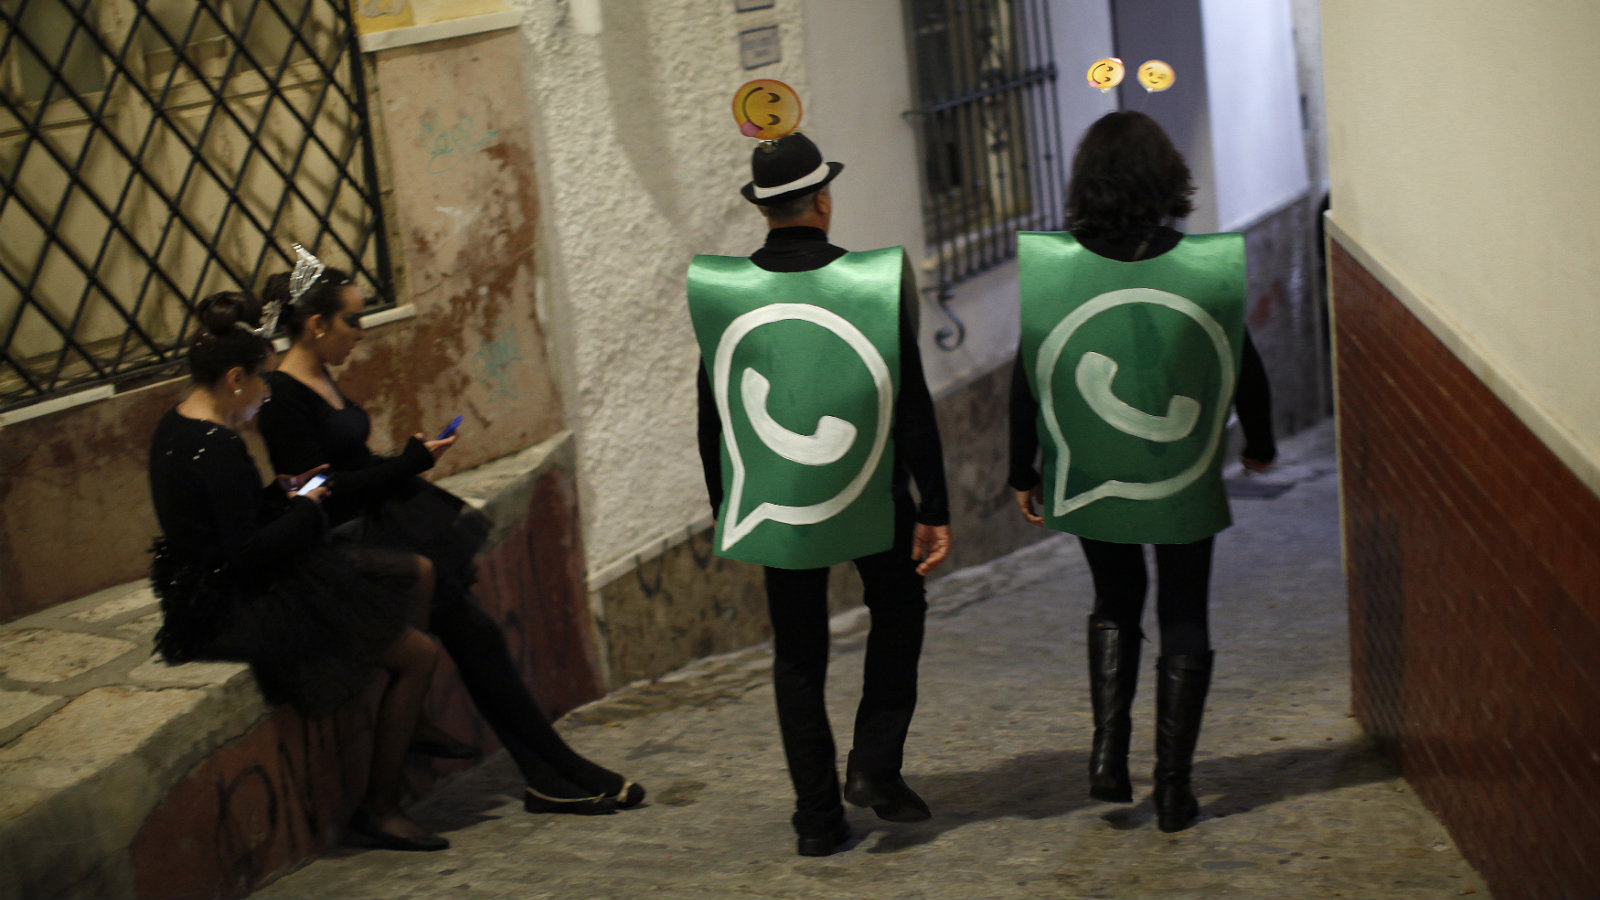 Revellers dressed up as dancers of 'Black Swan' check their mobile phones next to revellers dressed up as a Whatsapp logo as they take part in New Year's celebrations in Coin, near Malaga, southern Spain, early January 1, 2015. Villagers and revellers dressed up in funny costumes to take part in the New Year's celebration.